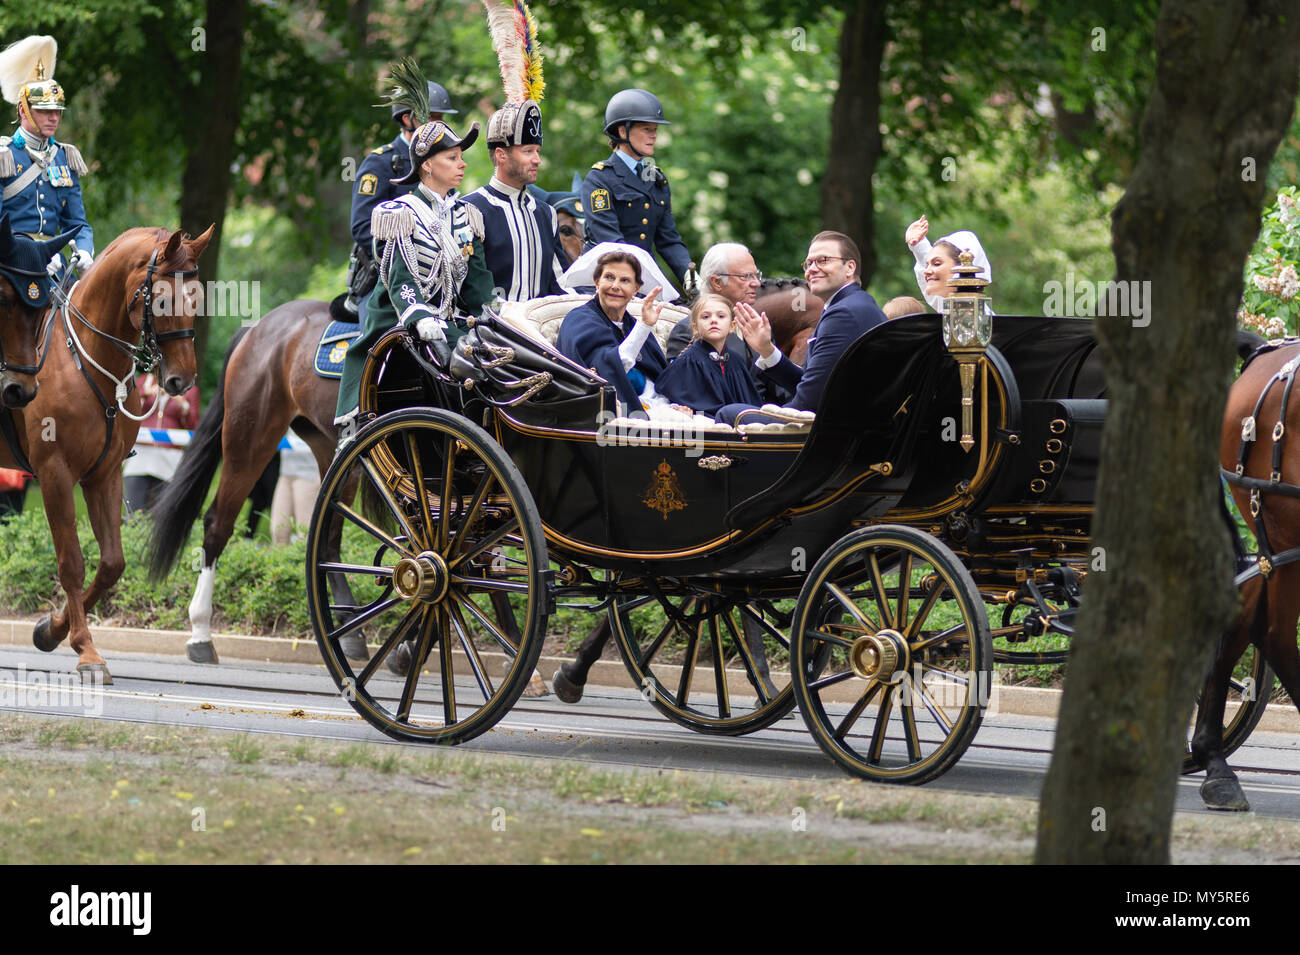 Stockholm, Sweden, June 6, 2018. The Swedish Royal Family celebrating the Swedish National Day in Stockholm. Credit: Barbro Bergfeldt/Alamy Live News - Stock Image